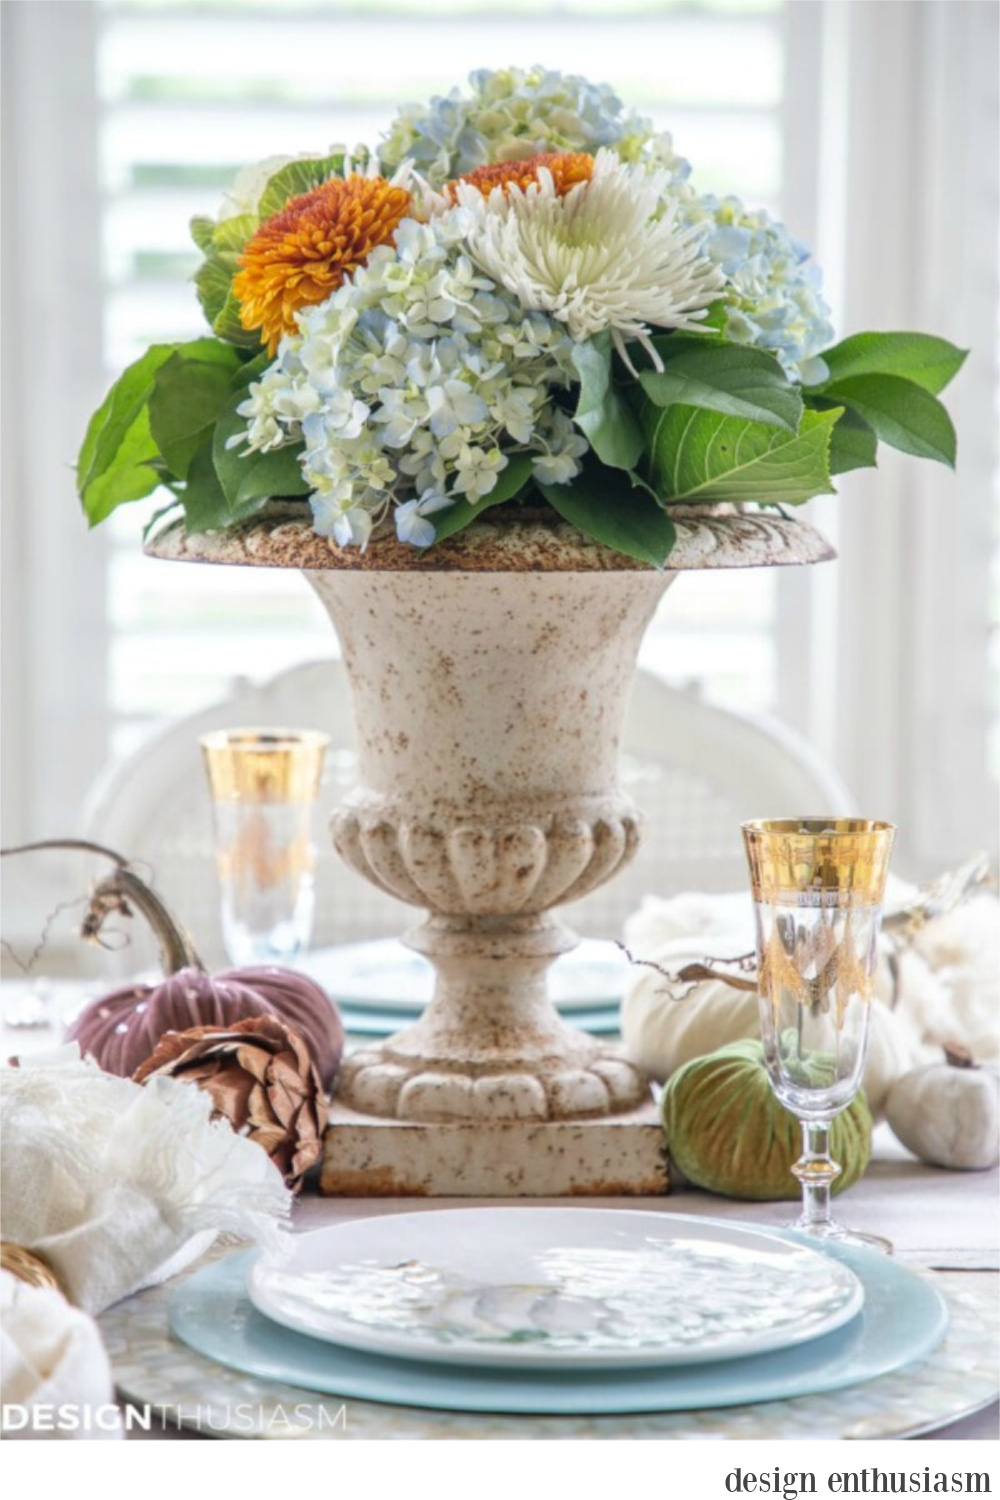 When you're after the softer side of autumn and a soothing color palette - tablescape by Design Enthusiasm. Serene French Farmhouse Fall Decor Photos ahead! #centerpiece #falltable #fallfloral #autumn #tabletop #Thanksgiving #pumpkins